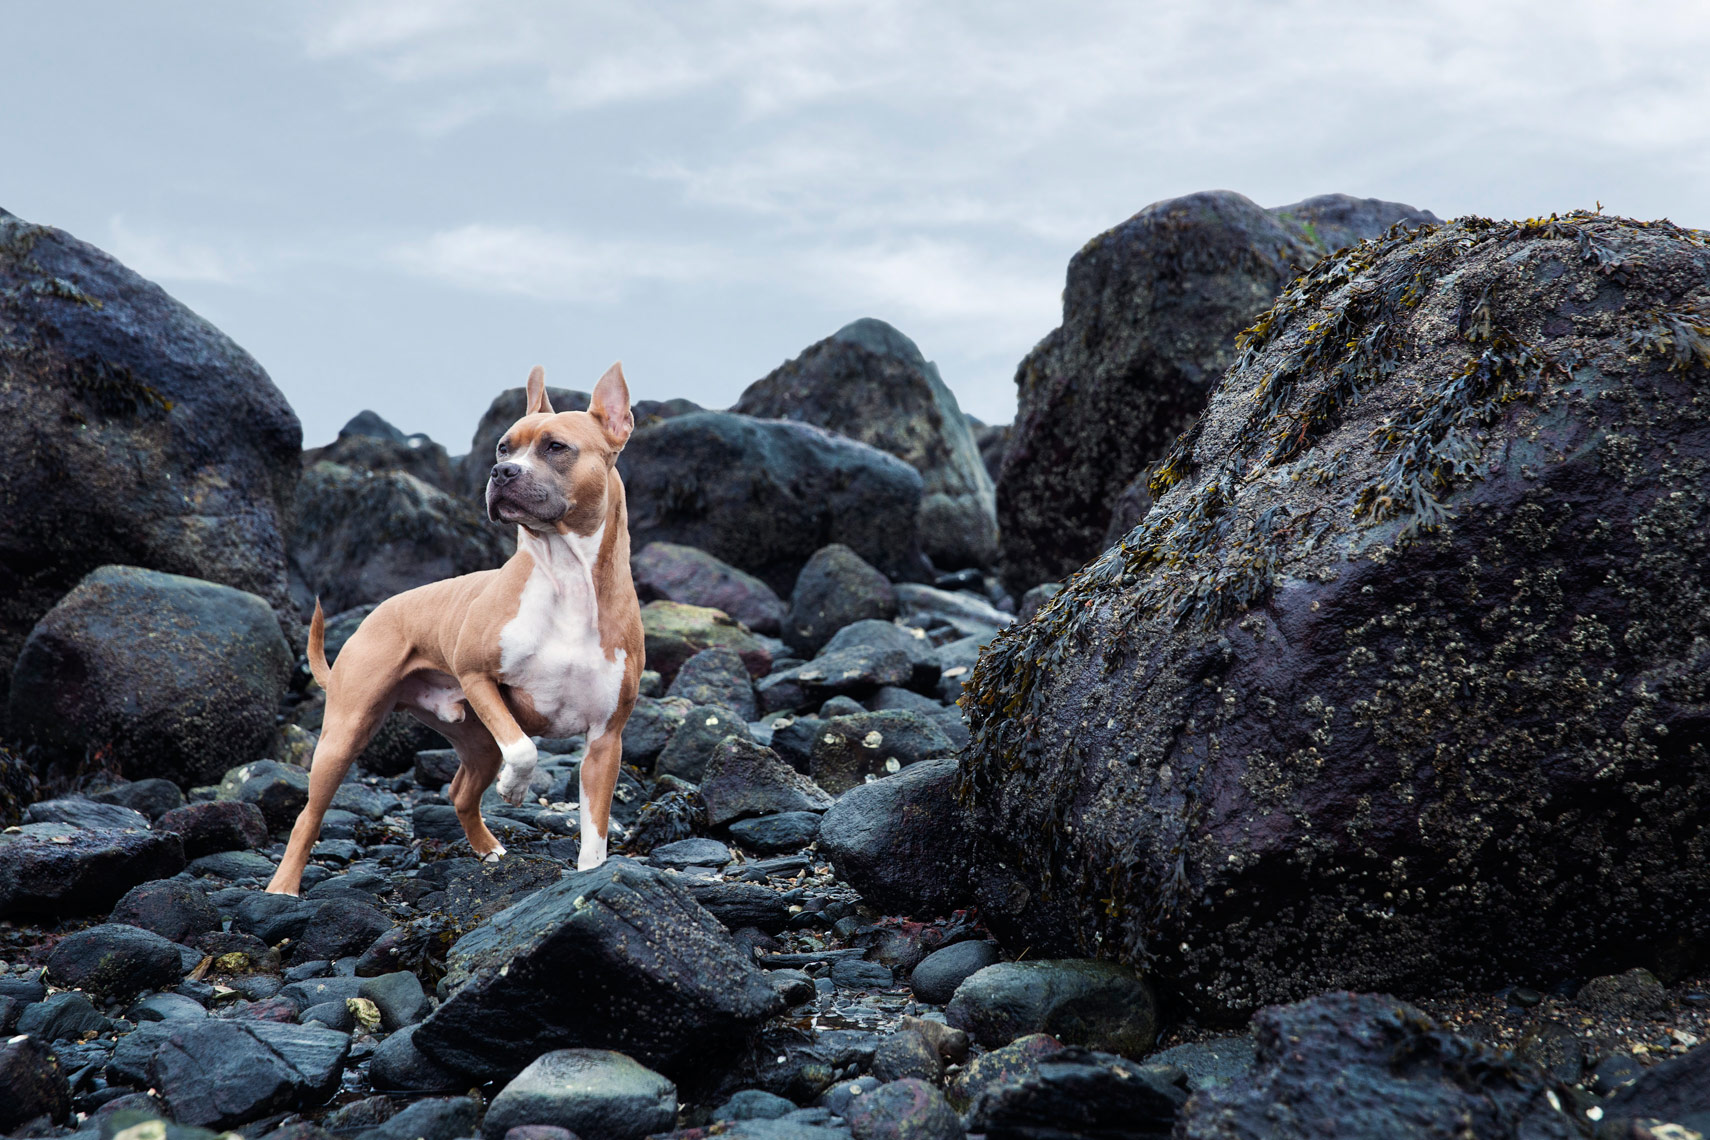 it bull boxer mix on a rocky beach on the U.S. Coast